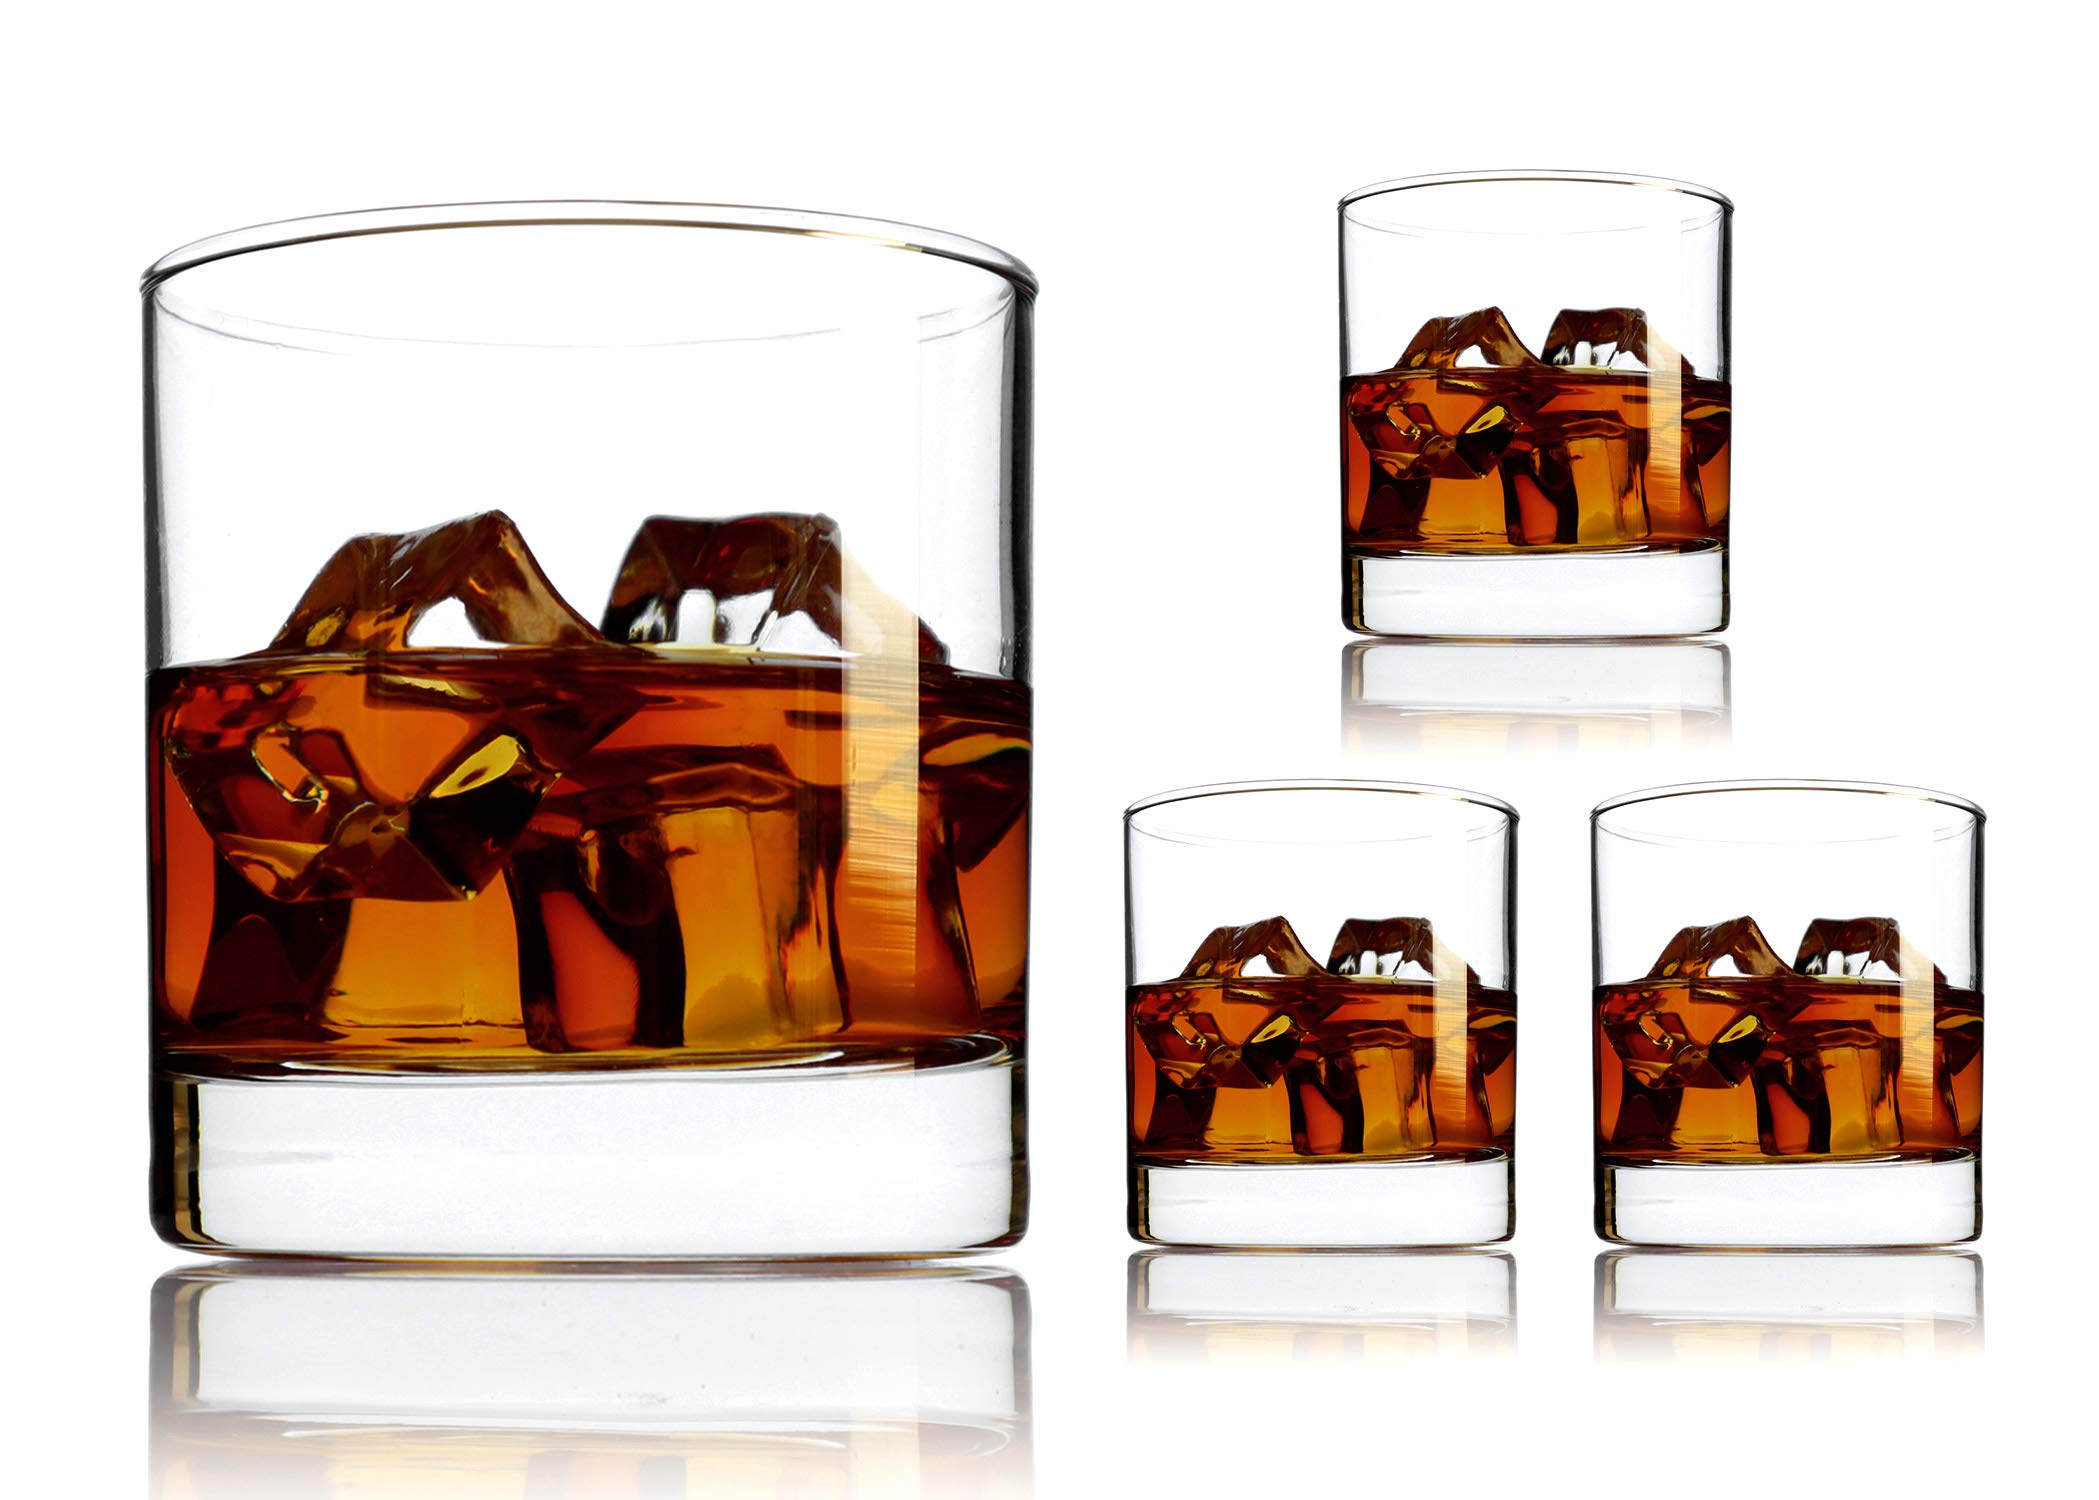 Luxury Whiskey Glasses - Made In USA, Thick Bottom, Heavyweight, Lead Free, Crystal Clear Clarity - Bar Liquor Cocktail Glassware - 8 ounce - (Set of 4) - Warranty